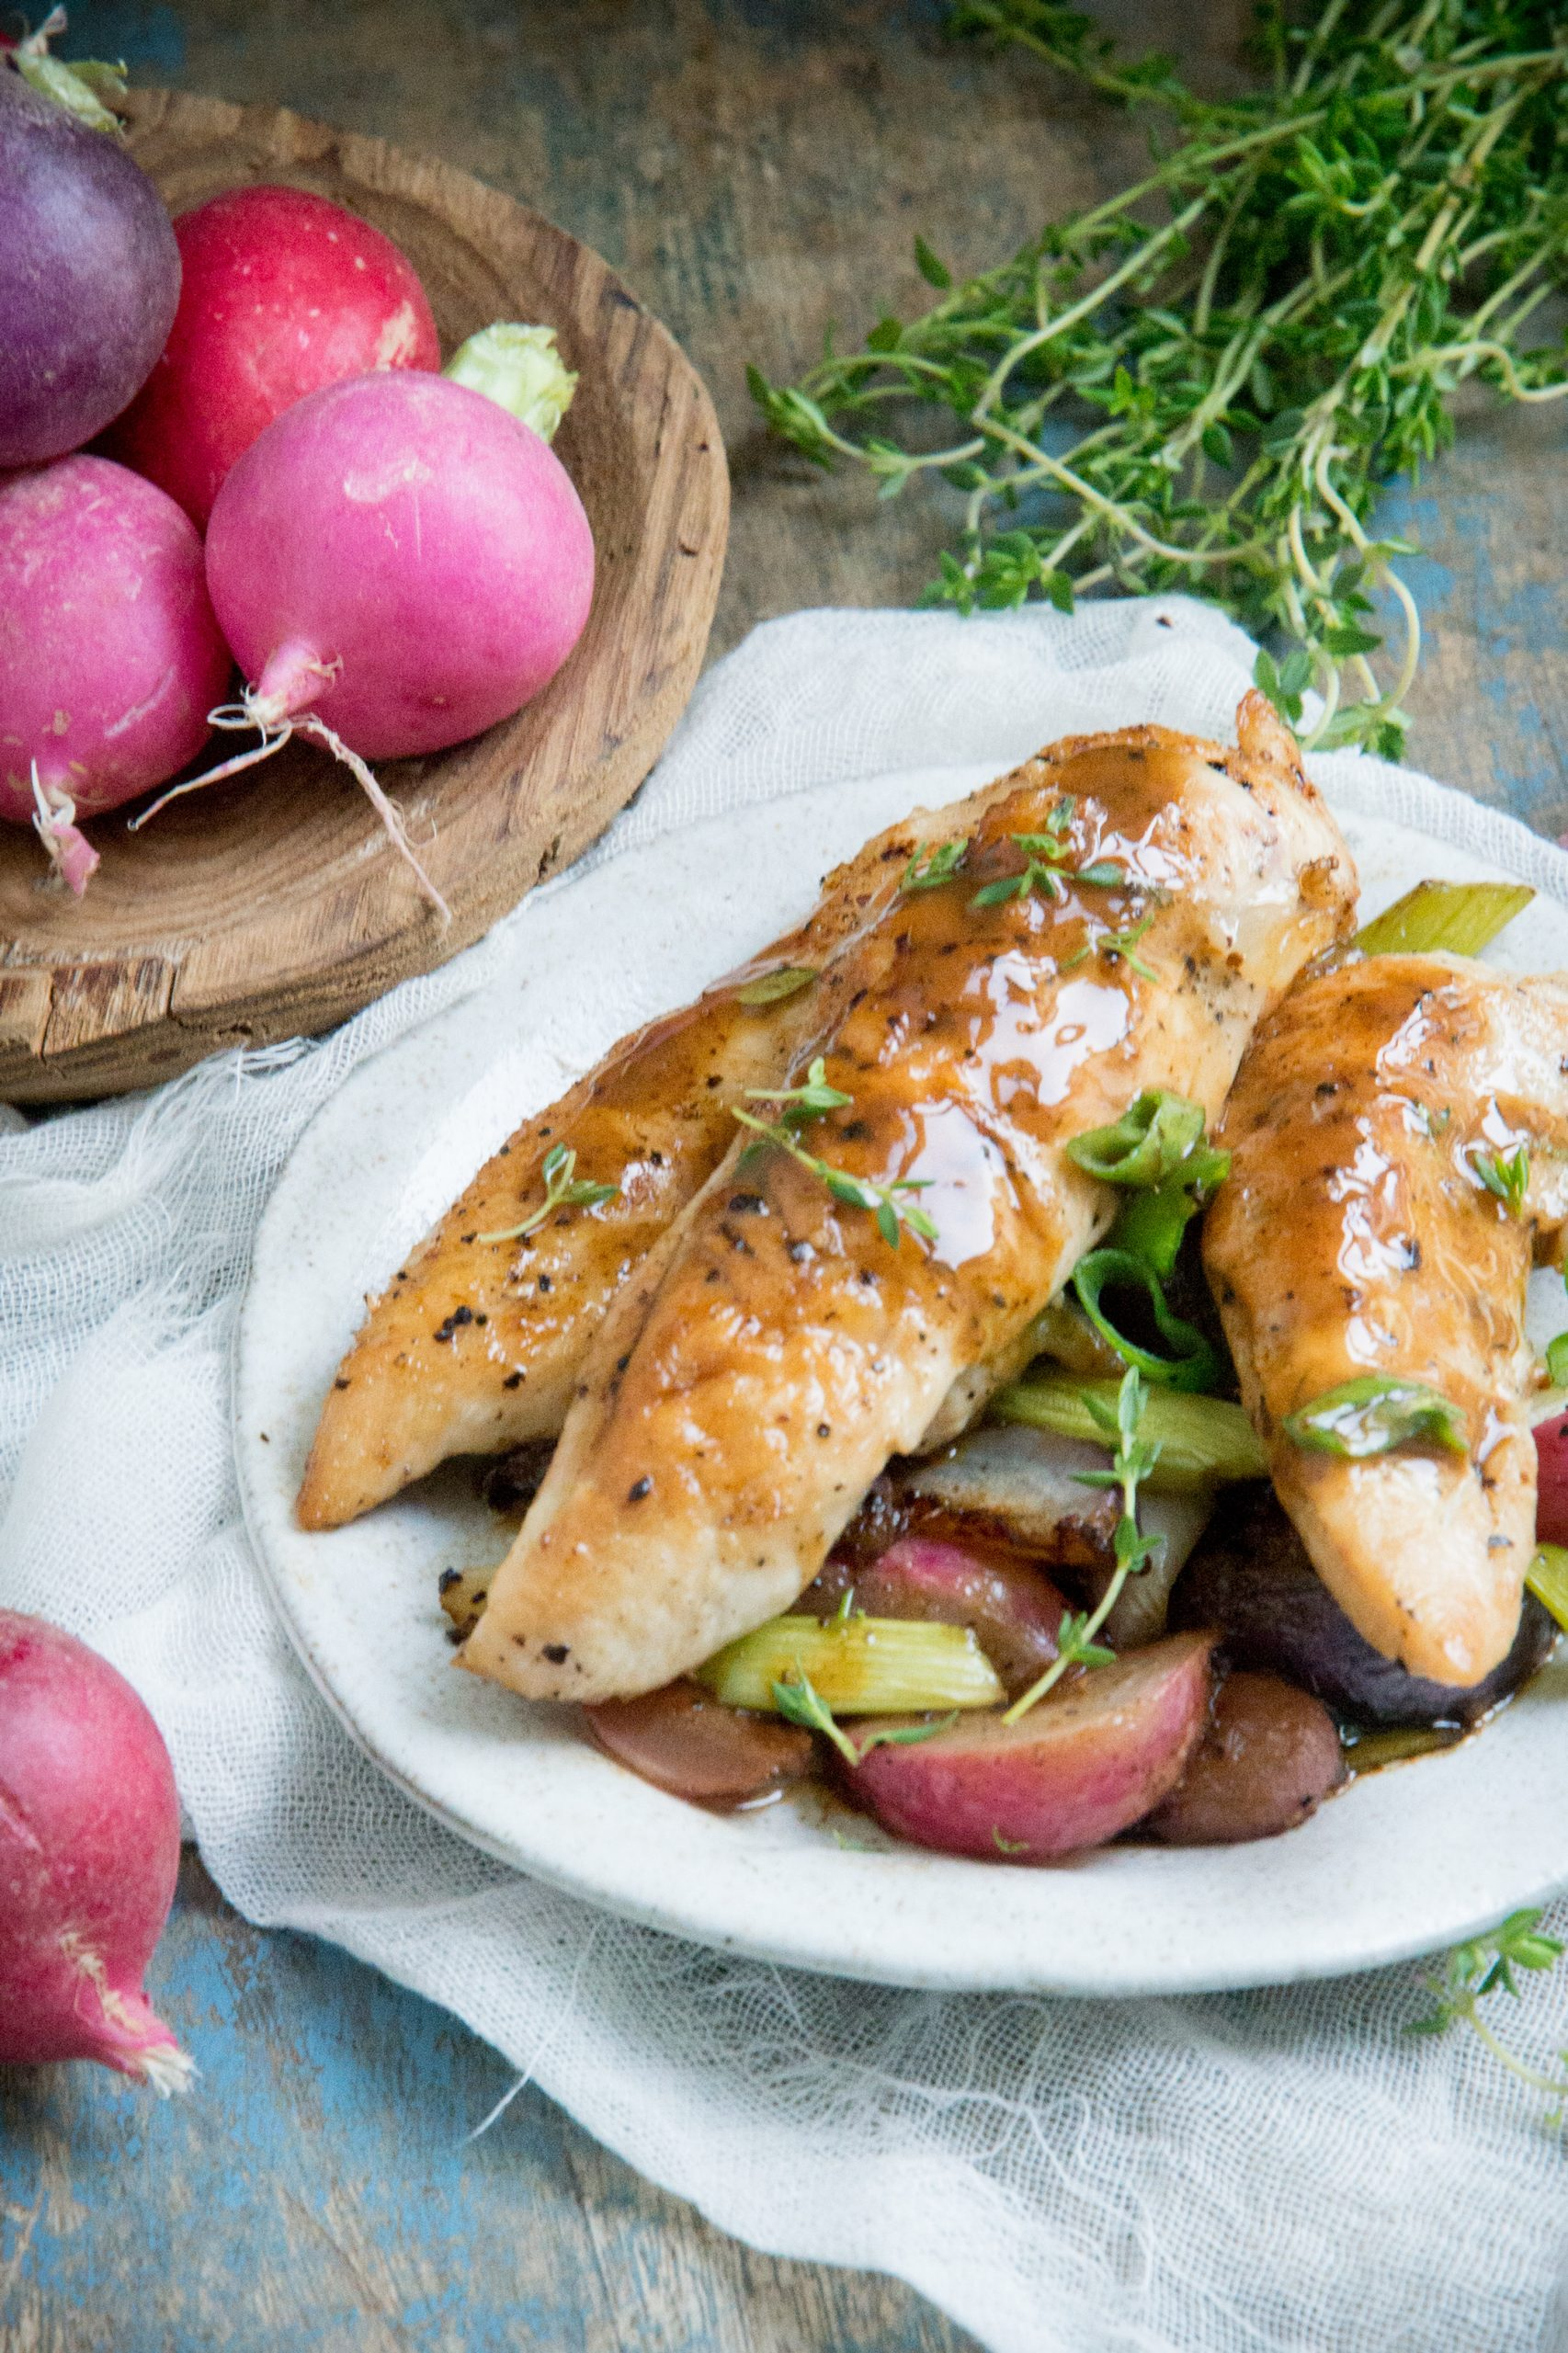 Chicken tenders, roasted radishes and onions on a plate.